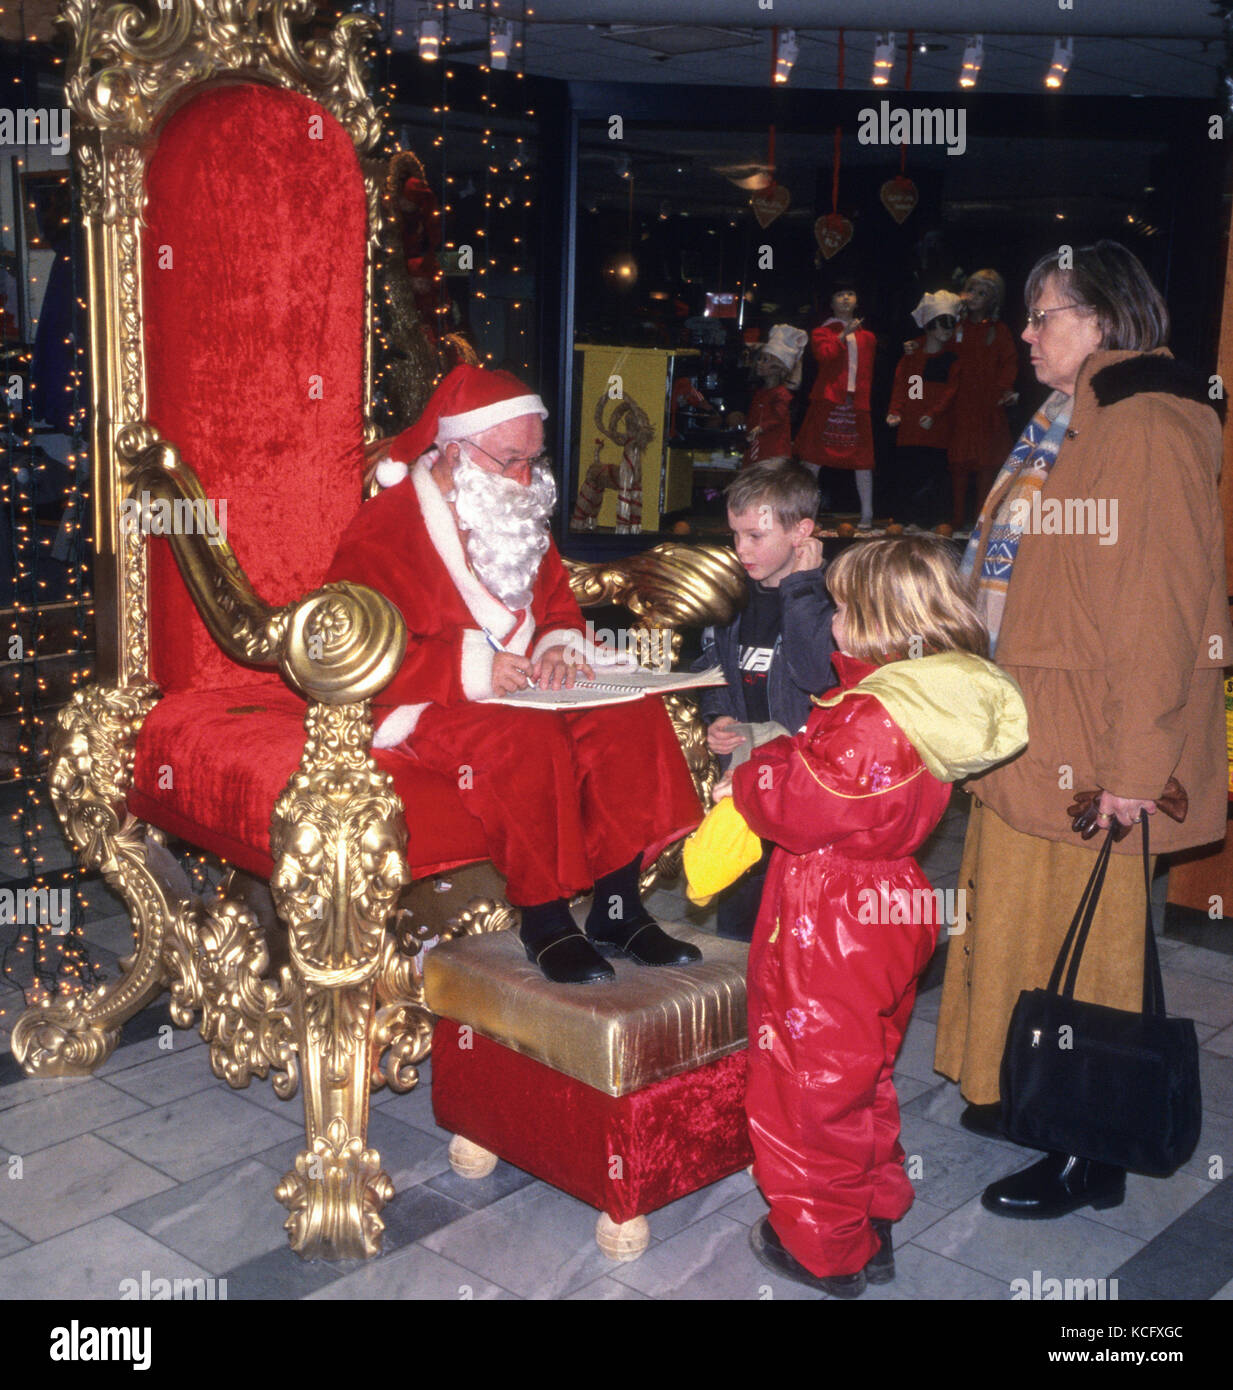 SANTA CLAUS at a shopping center receives wishes from children 2010 - Stock Image